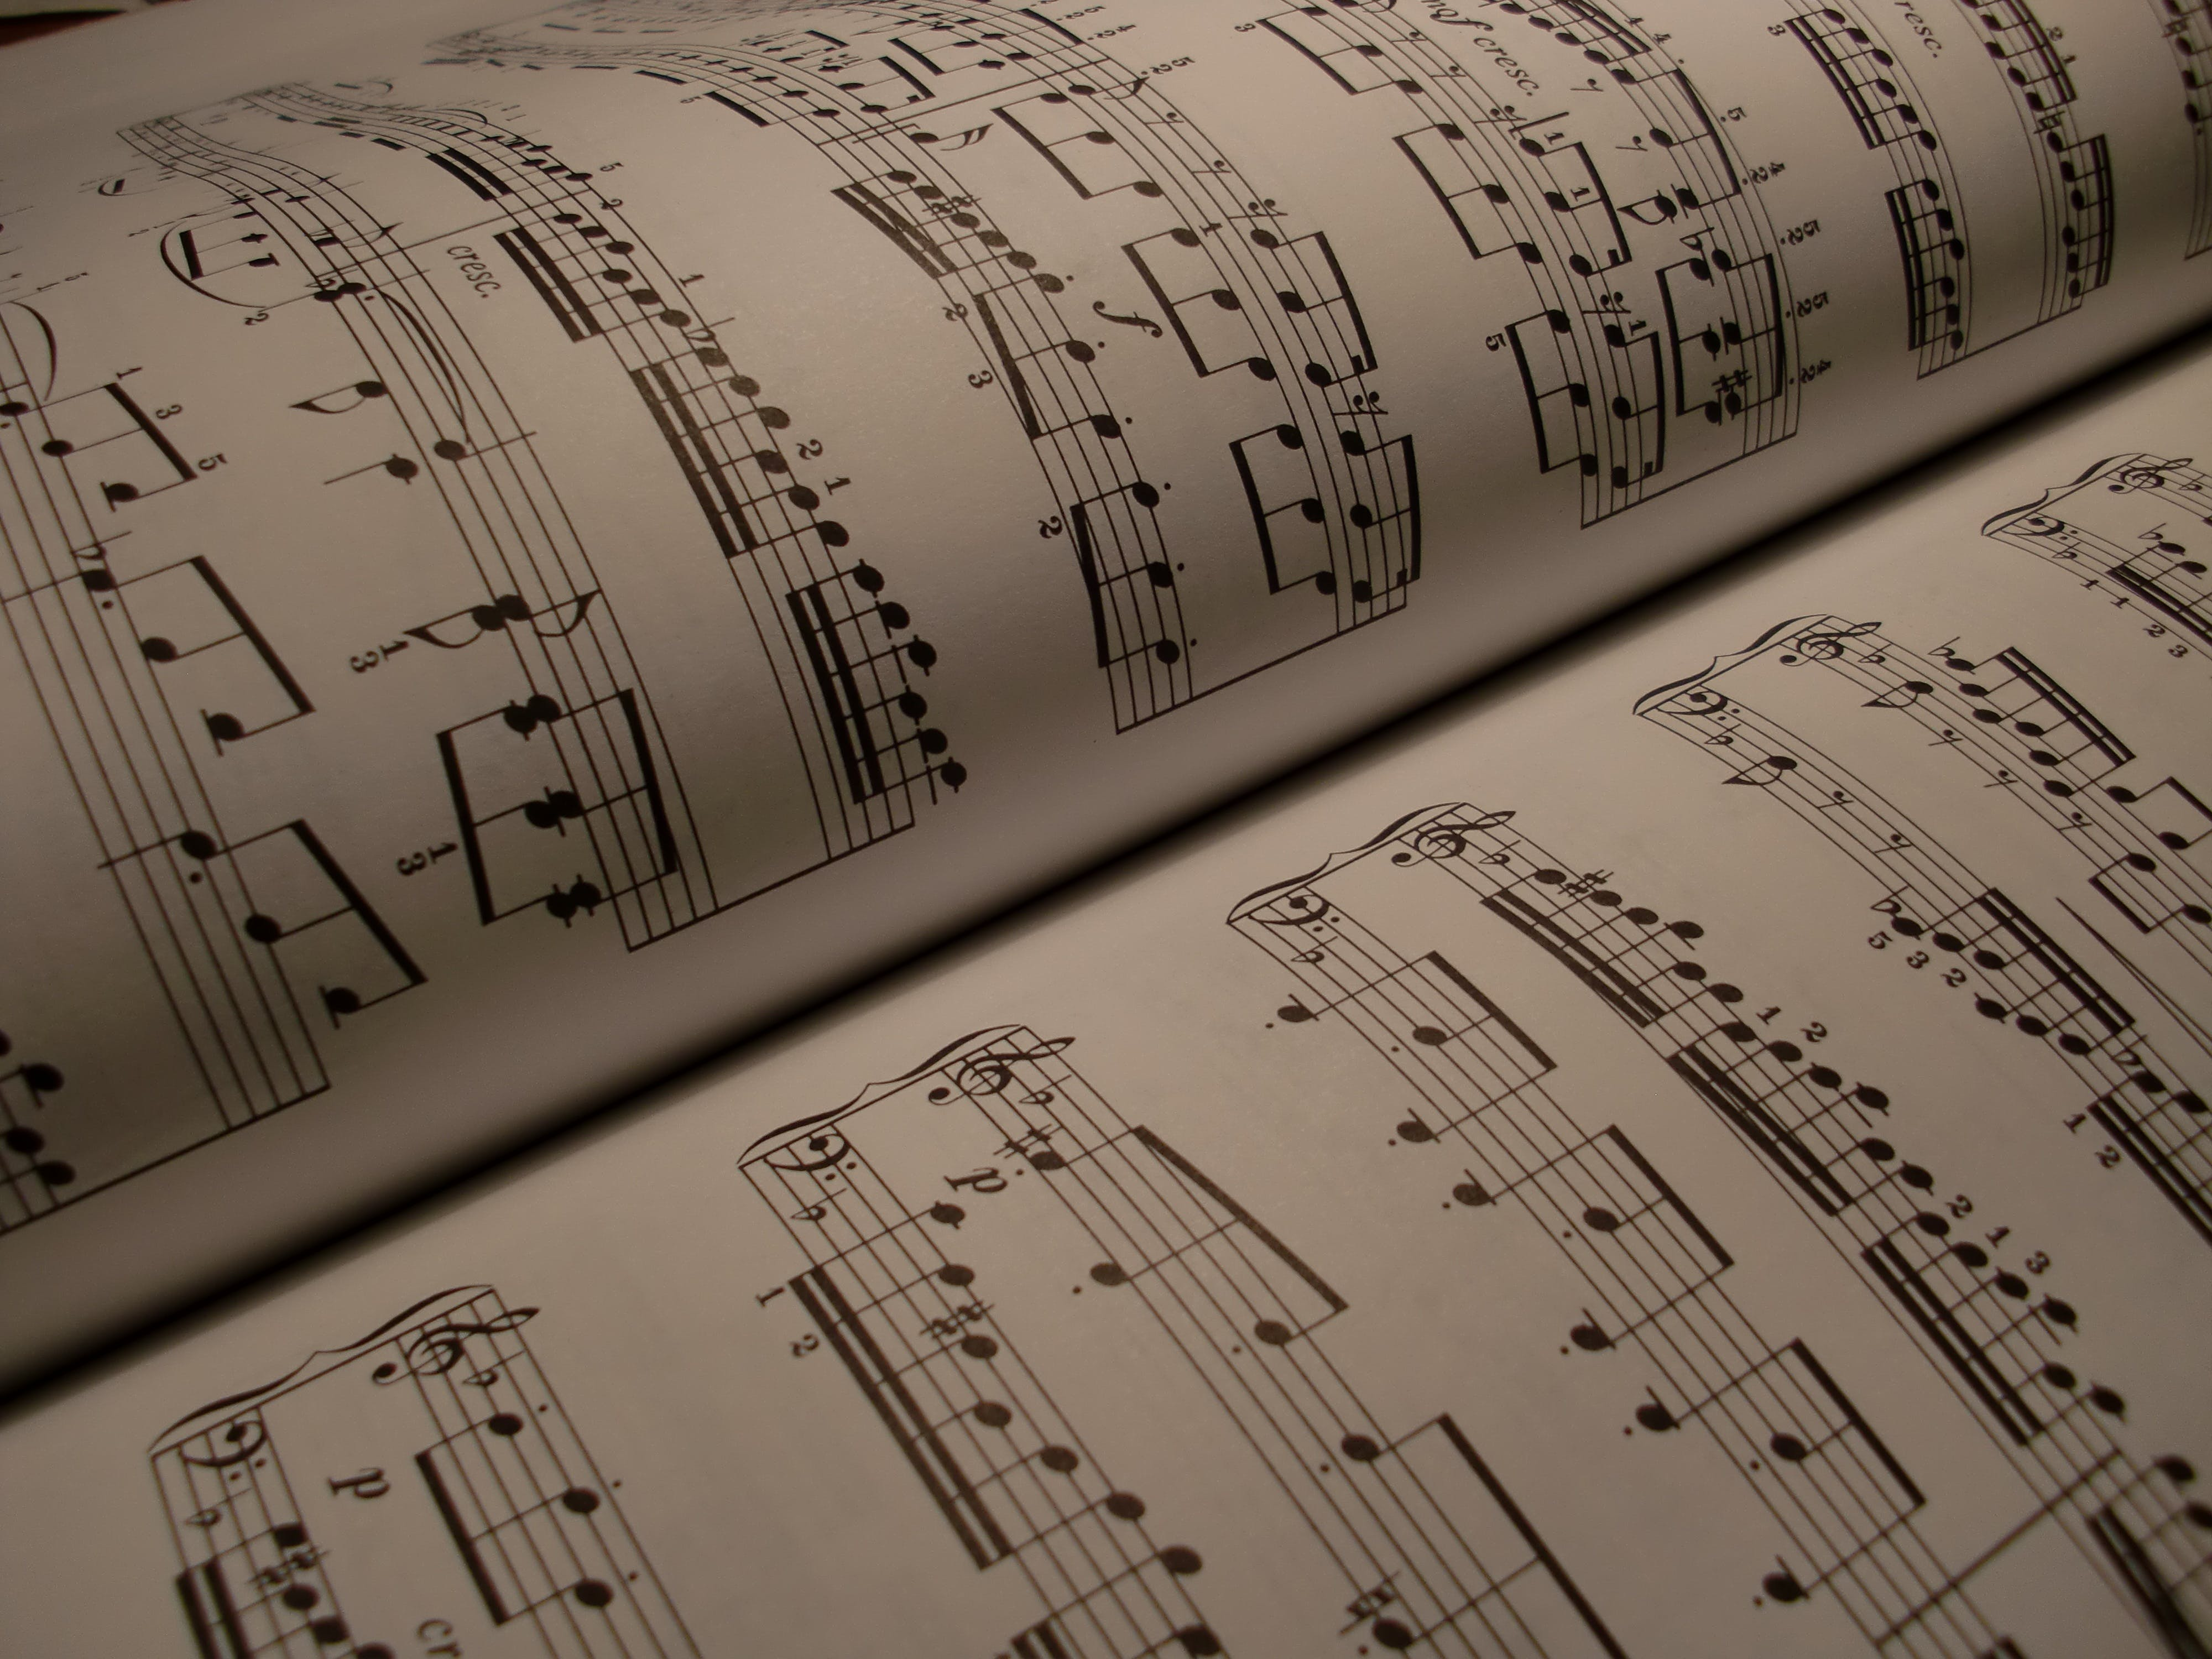 black-and-white, book, composing